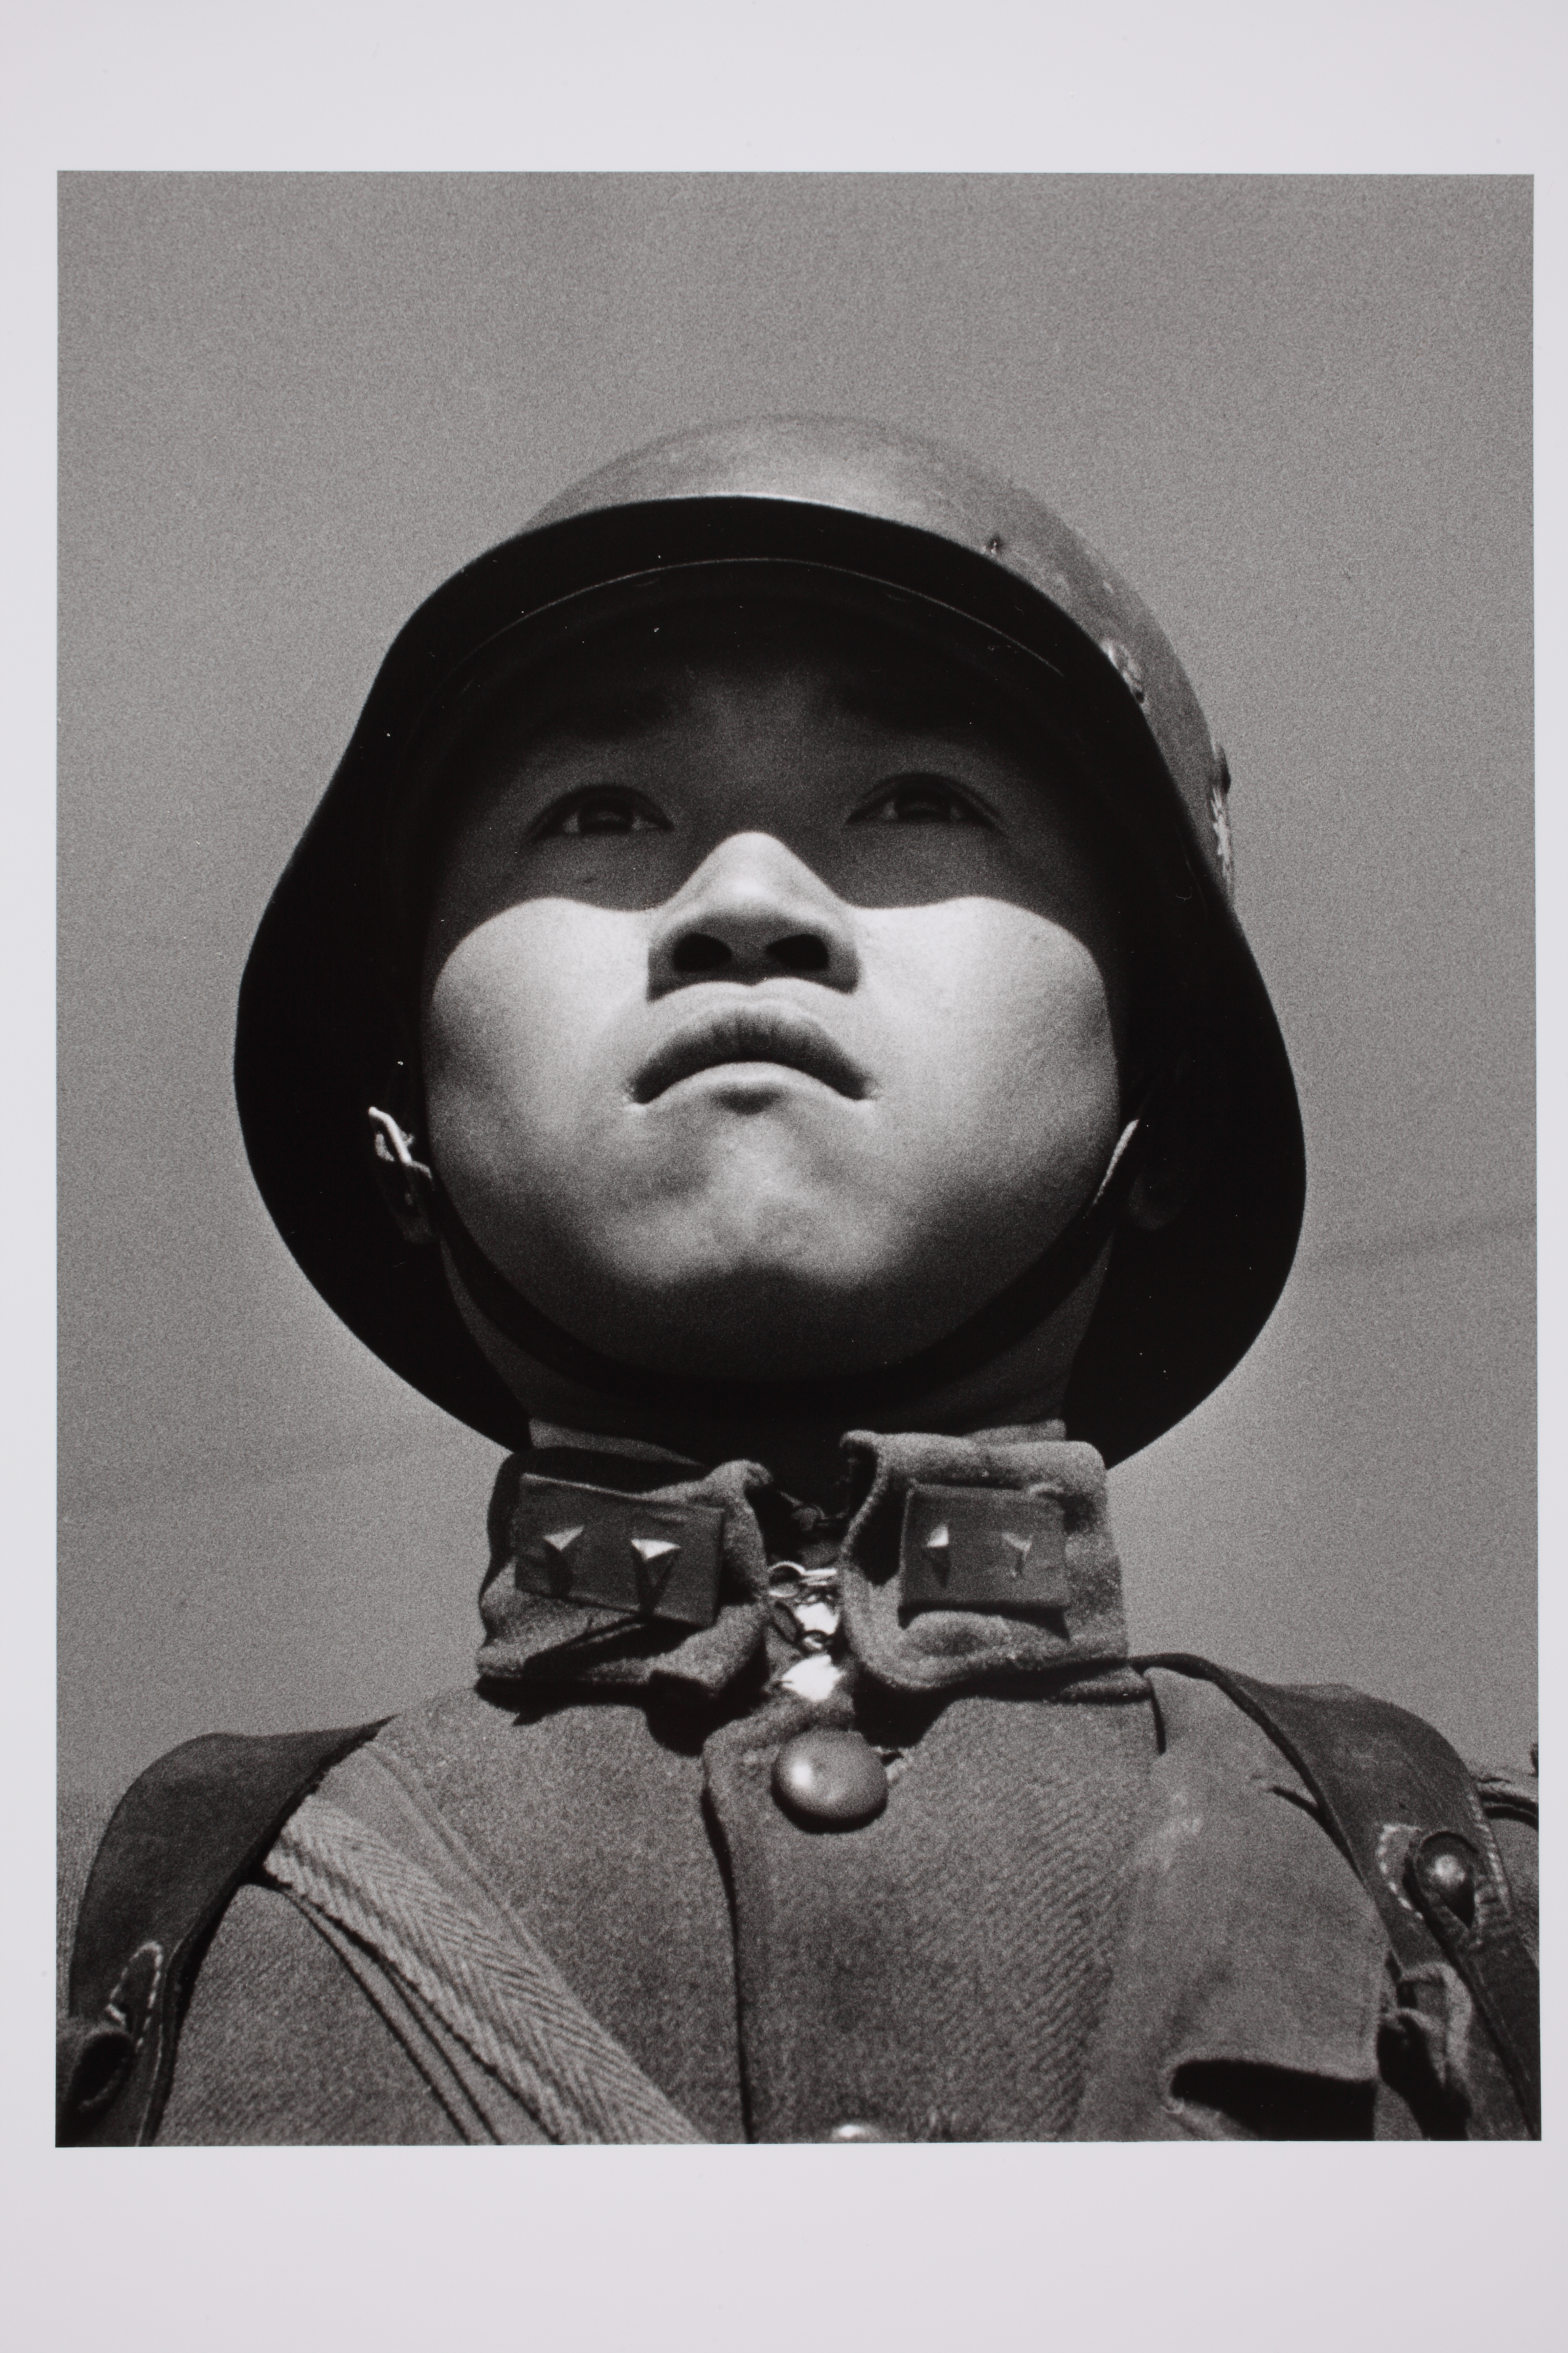 Boy soldier, Hankou, China © Robert Capa © International Center of Photography/Magnum Photos